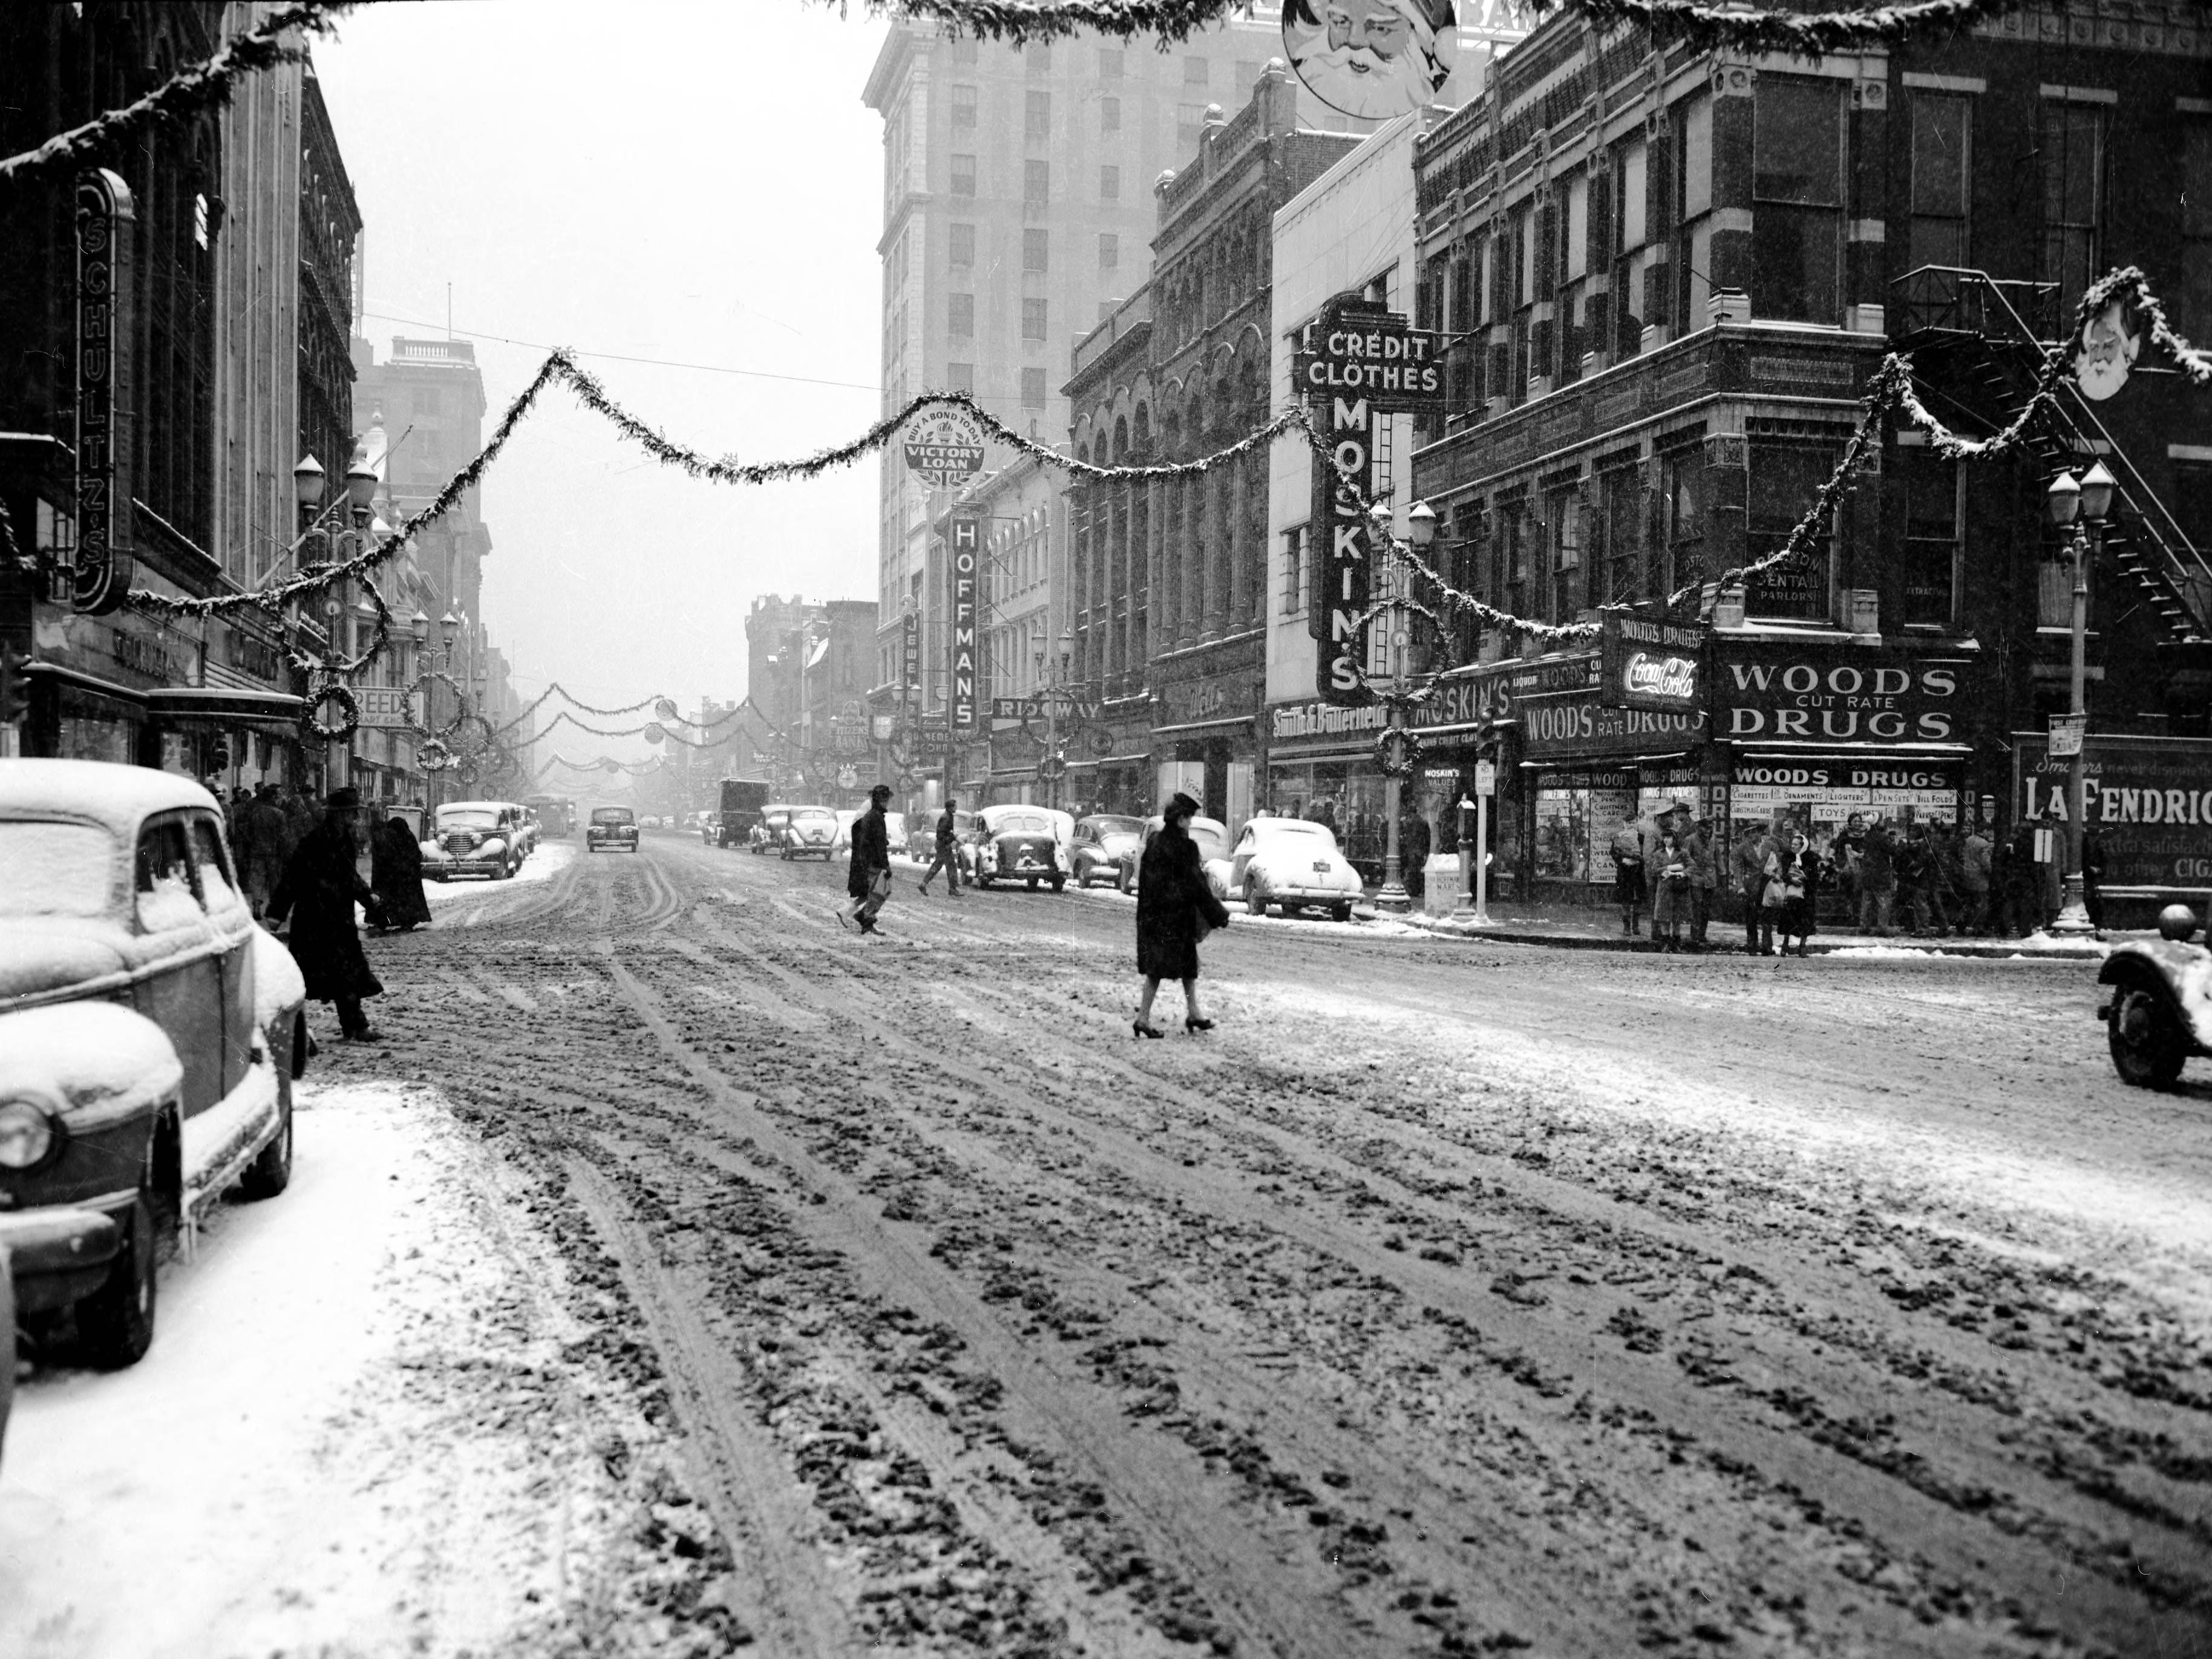 300 block of Main St., with snow on the ground and Christmas decorations up in 1945.